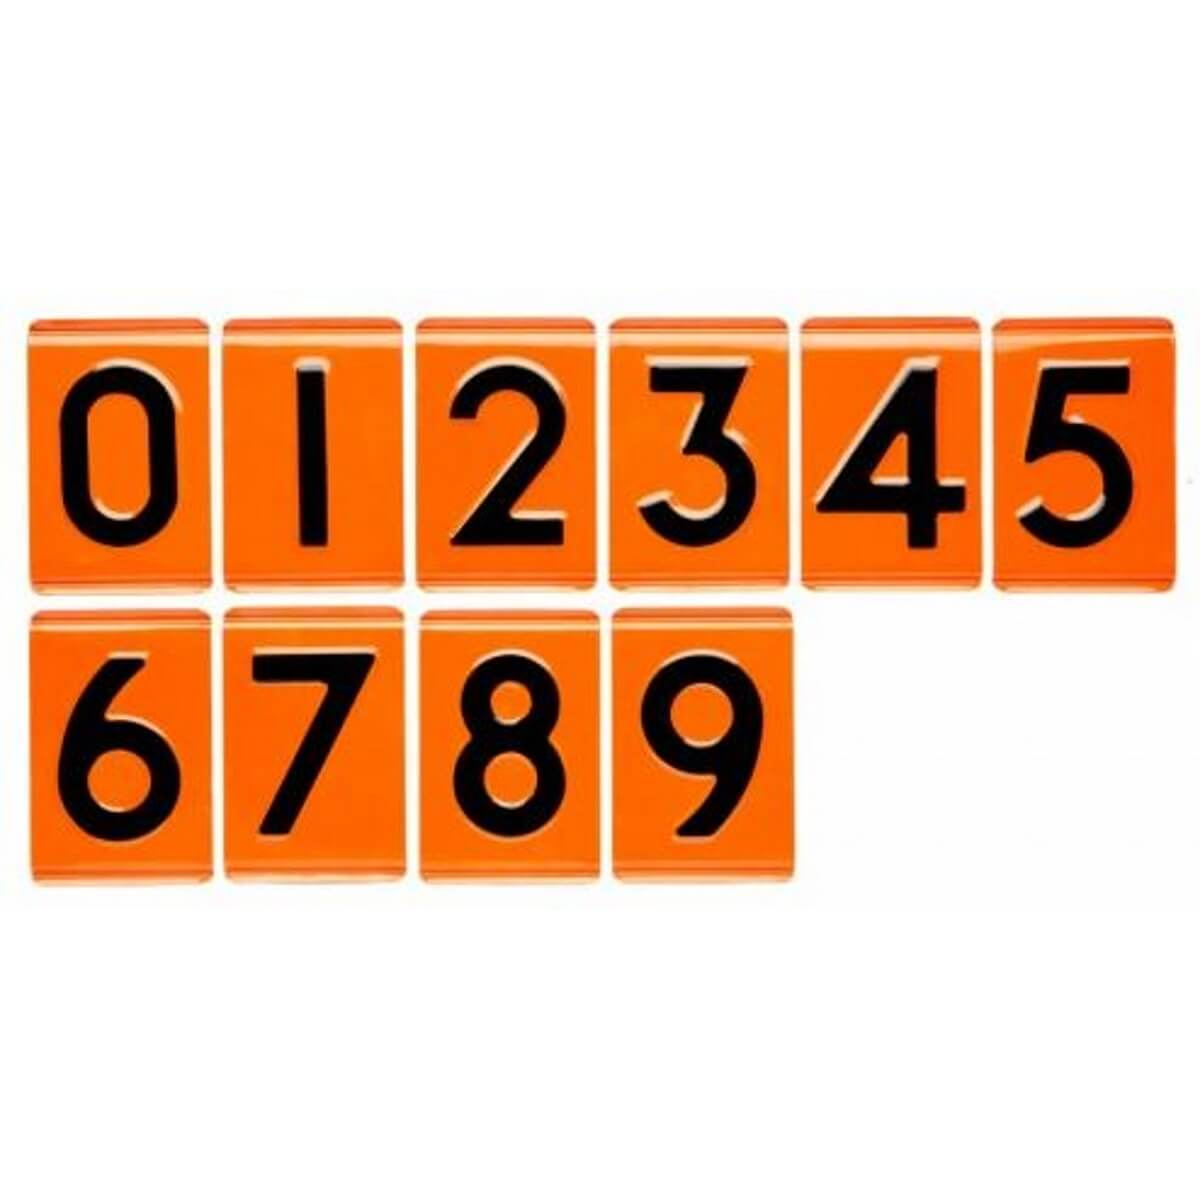 Complete Set of Triplex Kemler Digits